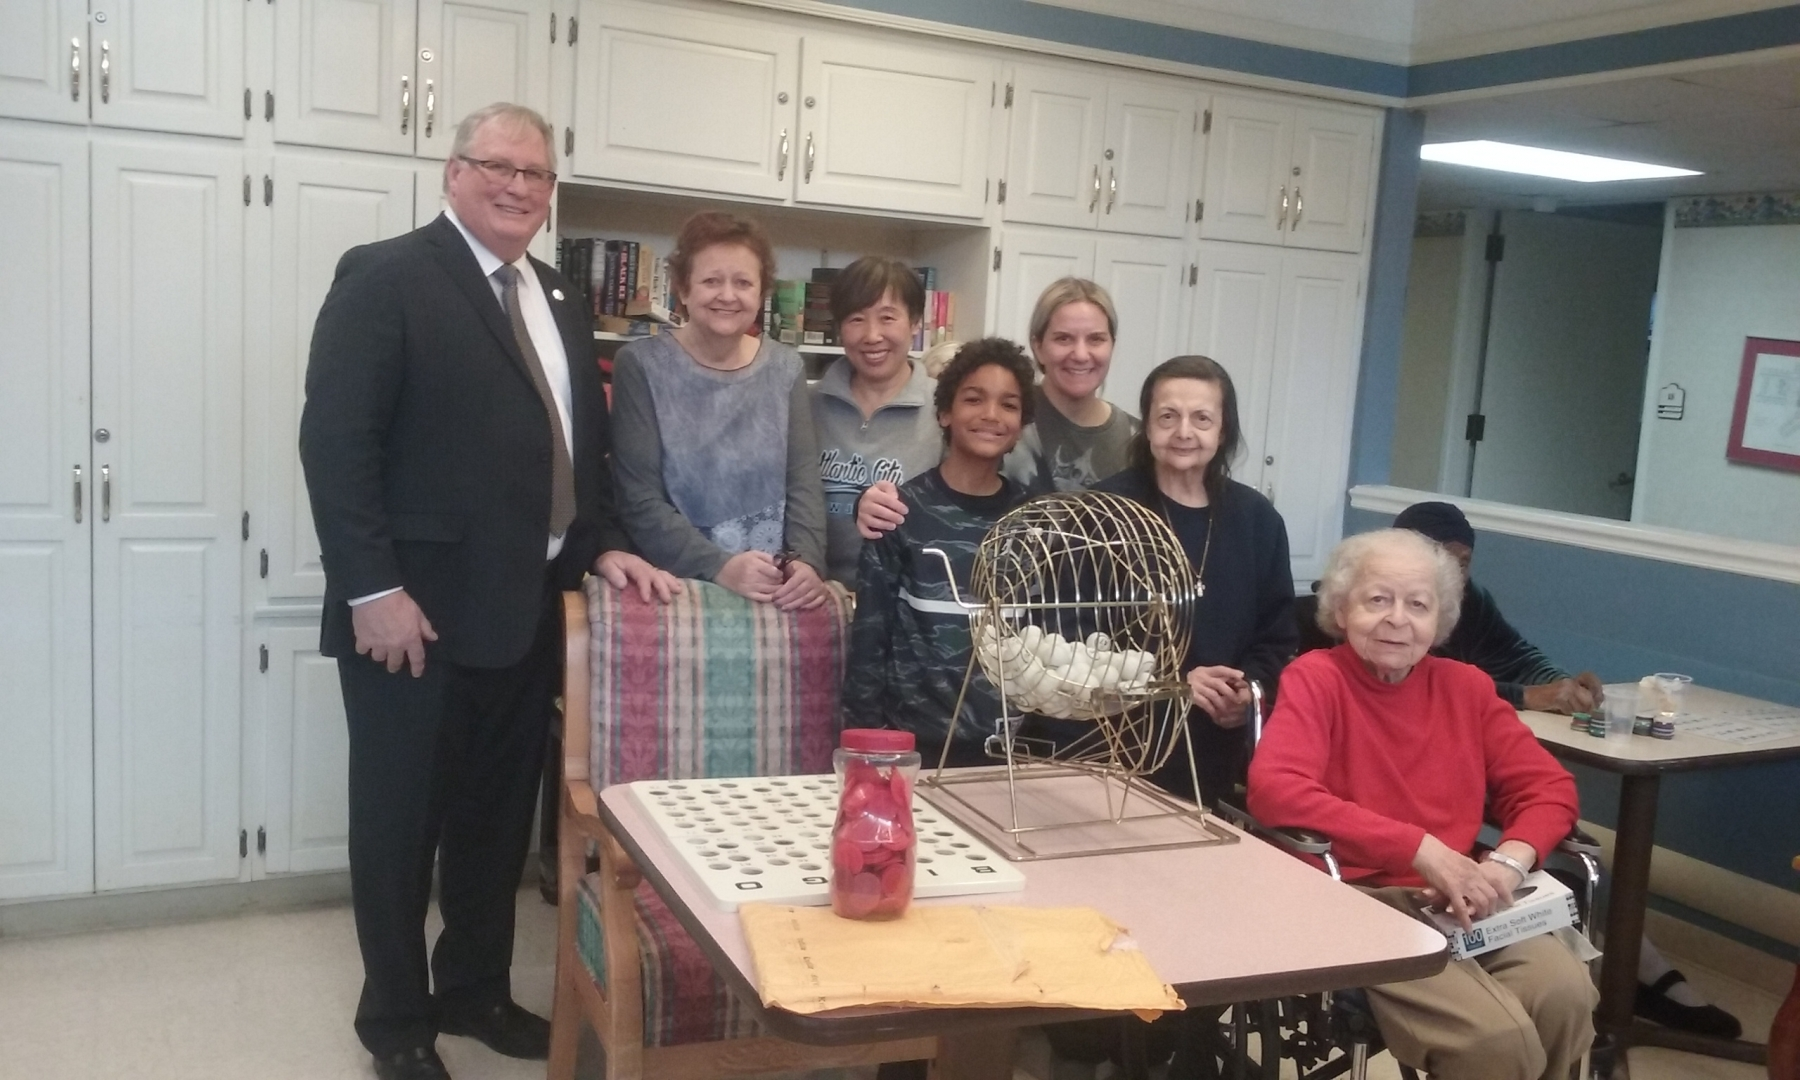 Spring-Grove-Bingo-with-New-Providence-Mayor-Al-Morgan-and-Diversity-Committee-7